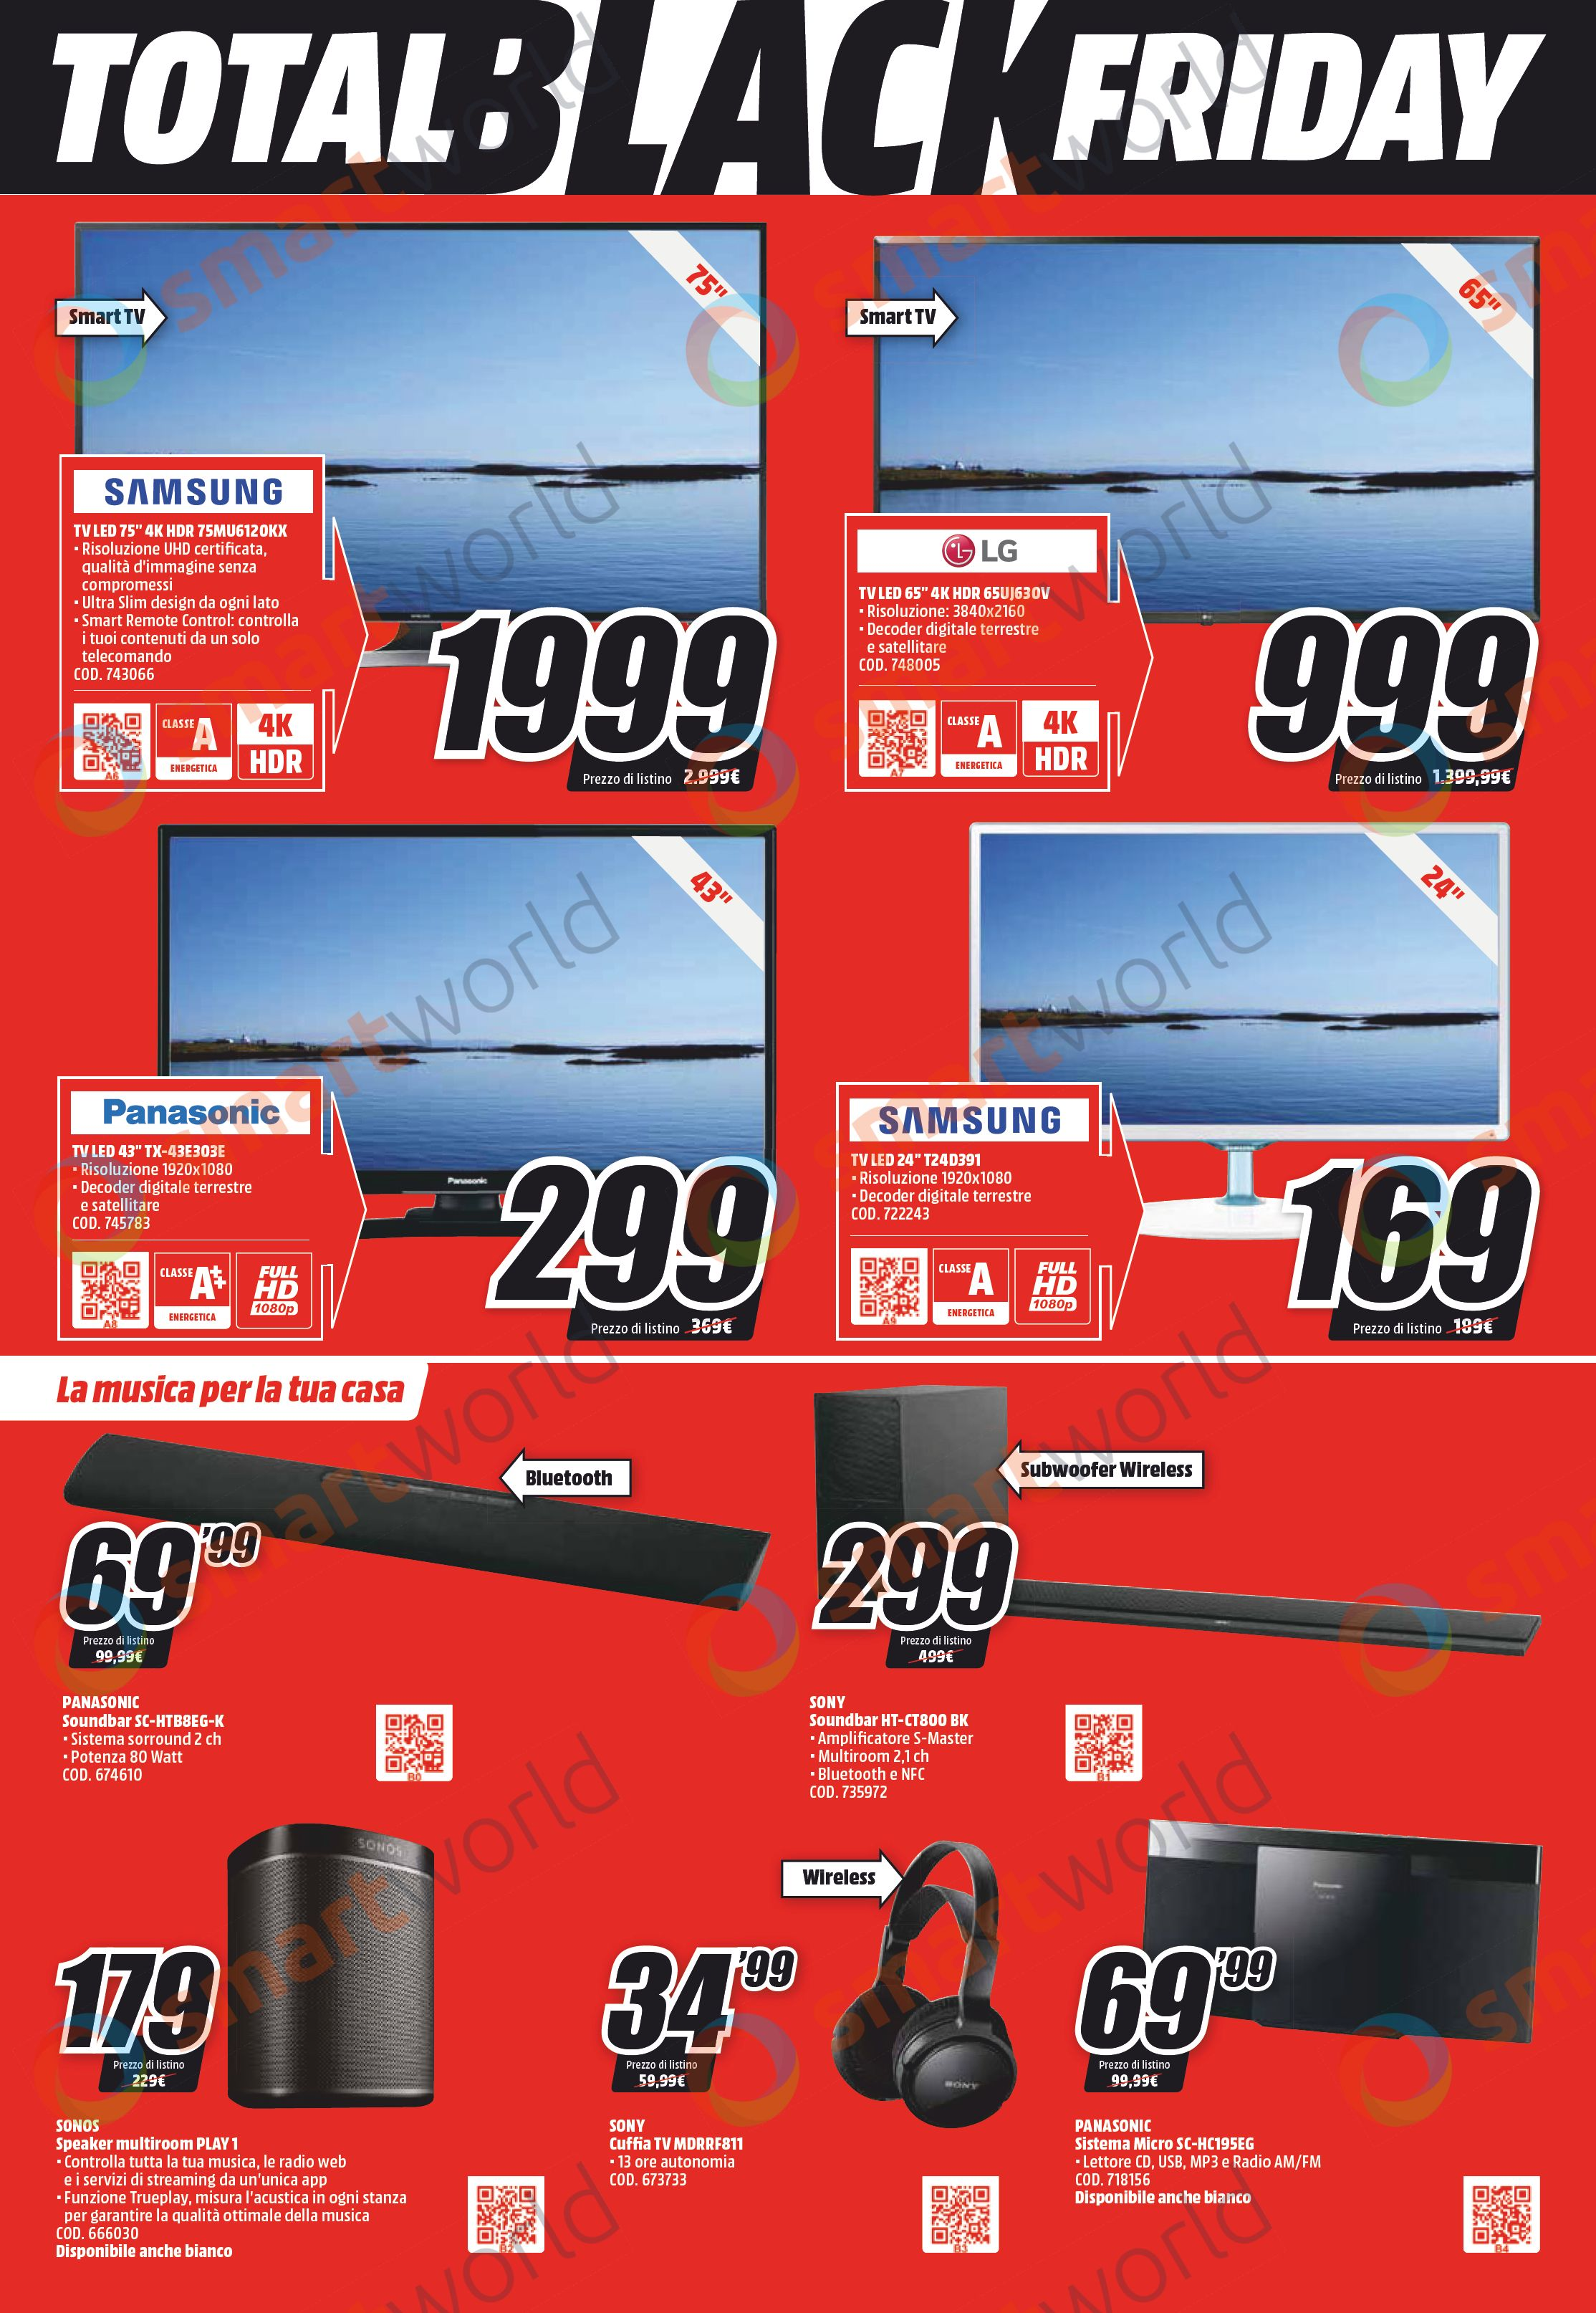 Volantino MediaWorld Total Black Friday: 20 pagine di